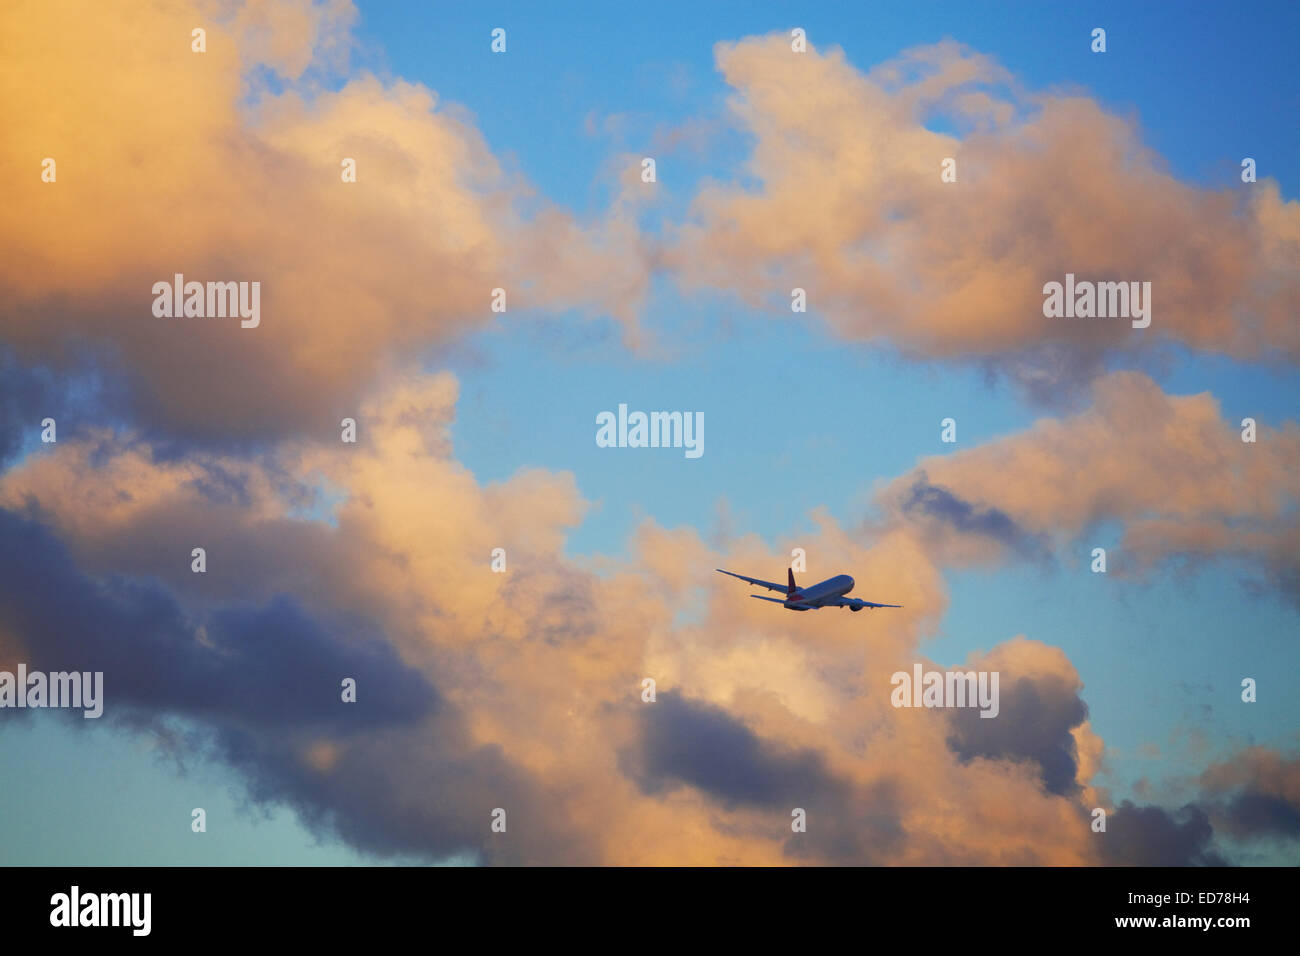 Commercial airliner in flight near Miami, Florida, USA - Stock Image